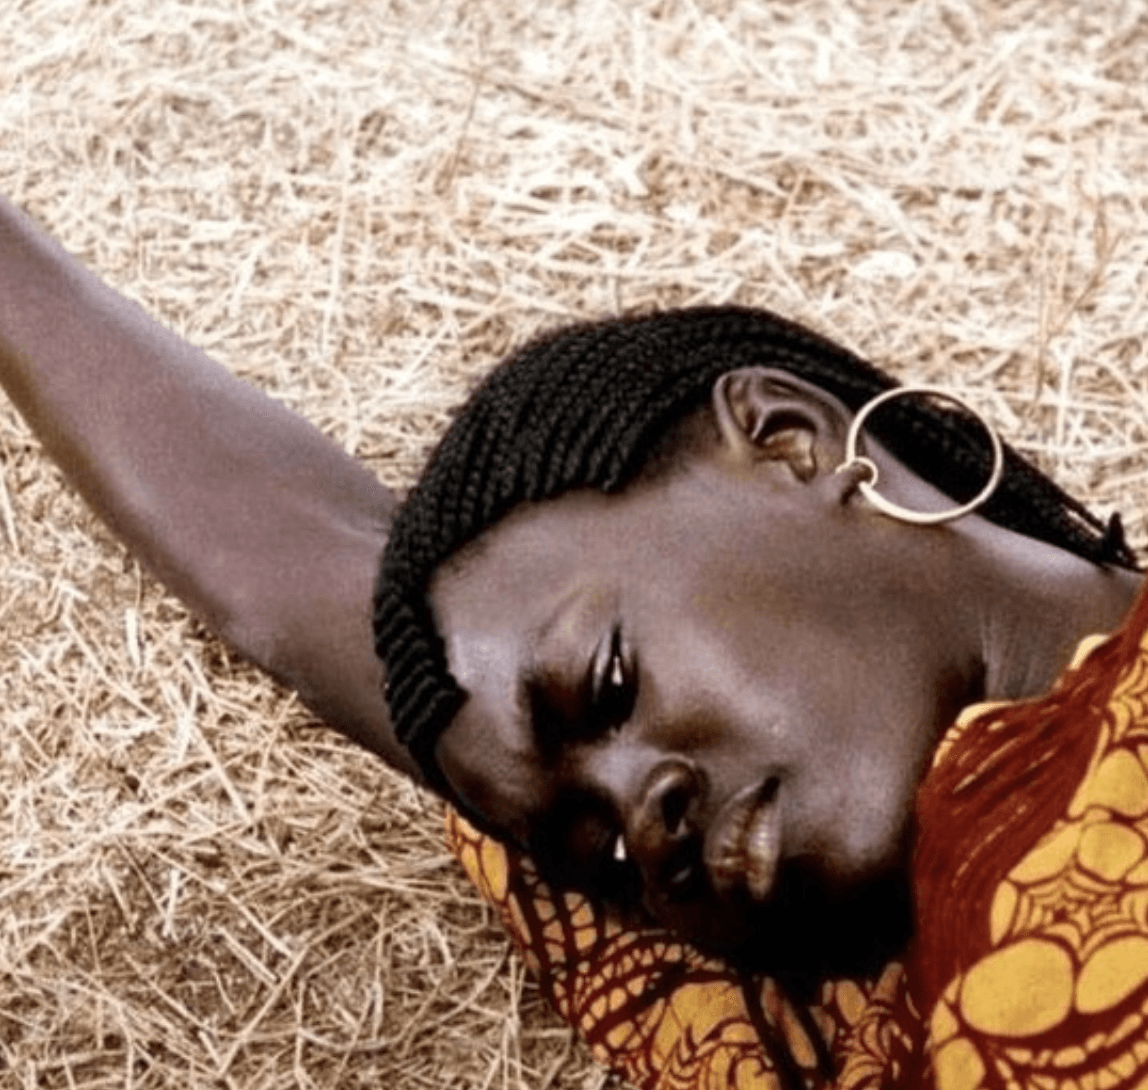 A still from 'Mossane,' a 1996 film by African filmmaking pioneer Safi Faye which won Un Certain Regard at the Cannes Film Festival that year